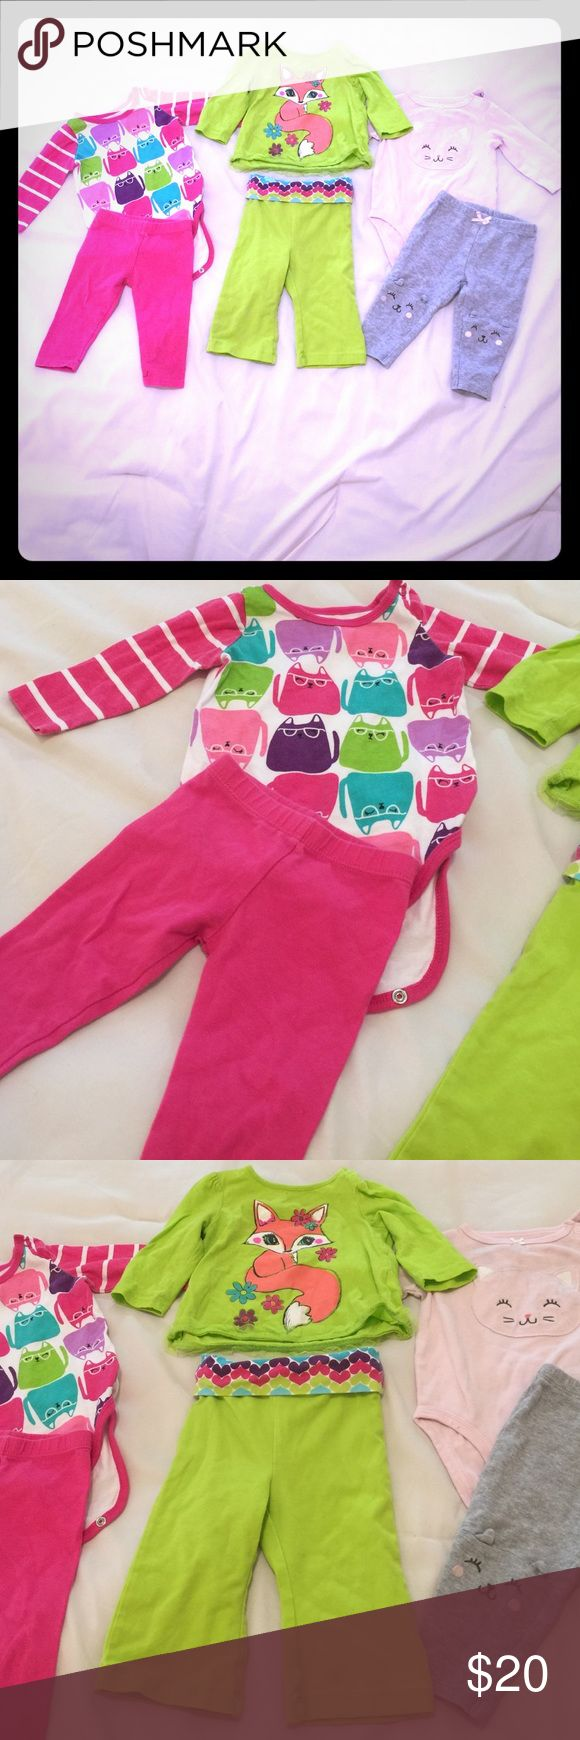 Bundle of 3 outfits baby girl 3-6mo long sleeve Fuchsia outfit is Okie Dokie. Lime green outfit is Jumping Beans. Both are in great condition, no stains. Pink and gray outfit is Carter's. Some pale gray transfer stains on the cat face on the onesie but I bet that will come out with stain remover. Matching Sets